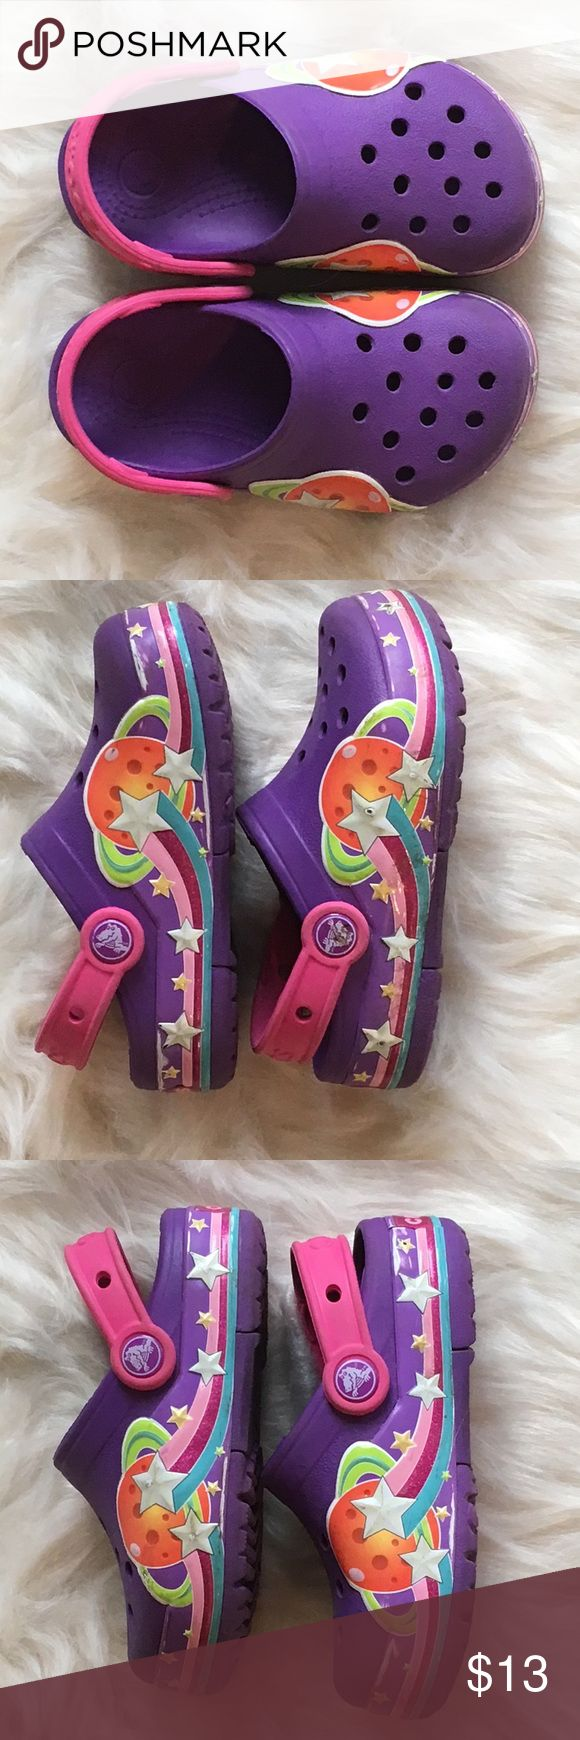 🛸Kids Space Crocs Size 10🛸 Kids Space Style Crocs Size 10 used but in great condition! CROCS Shoes Water Shoes #WaterShoes